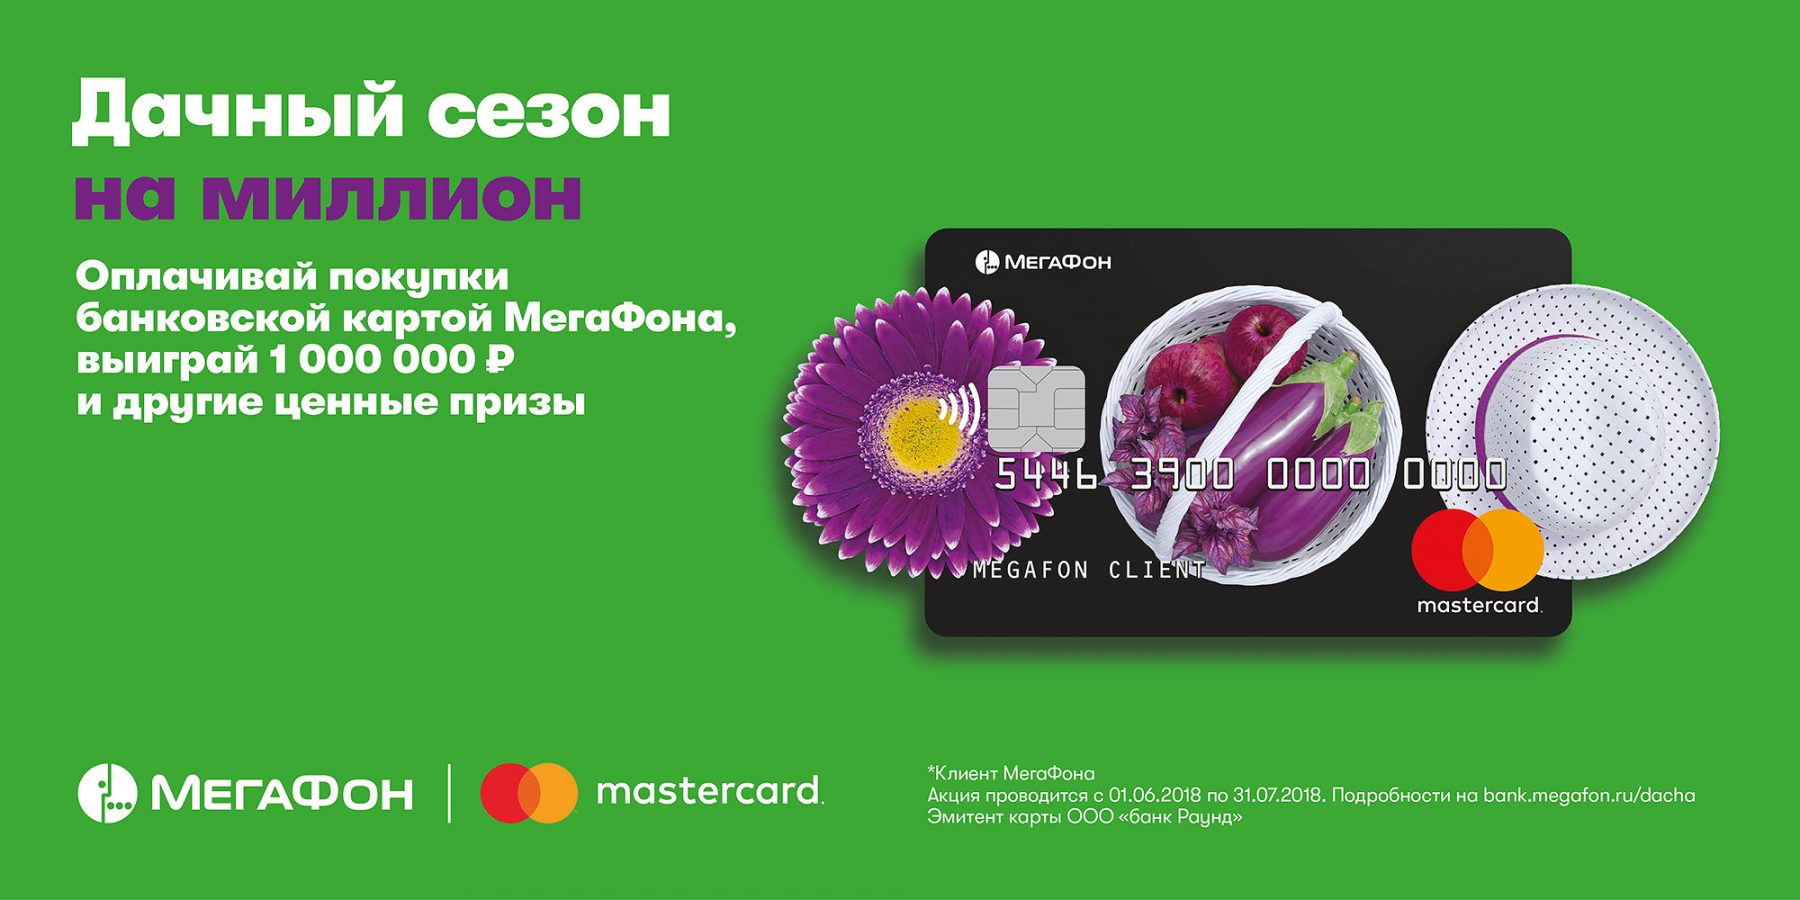 Replenishment of MegaFon account with a bank card without a commission: step by step instructions 31